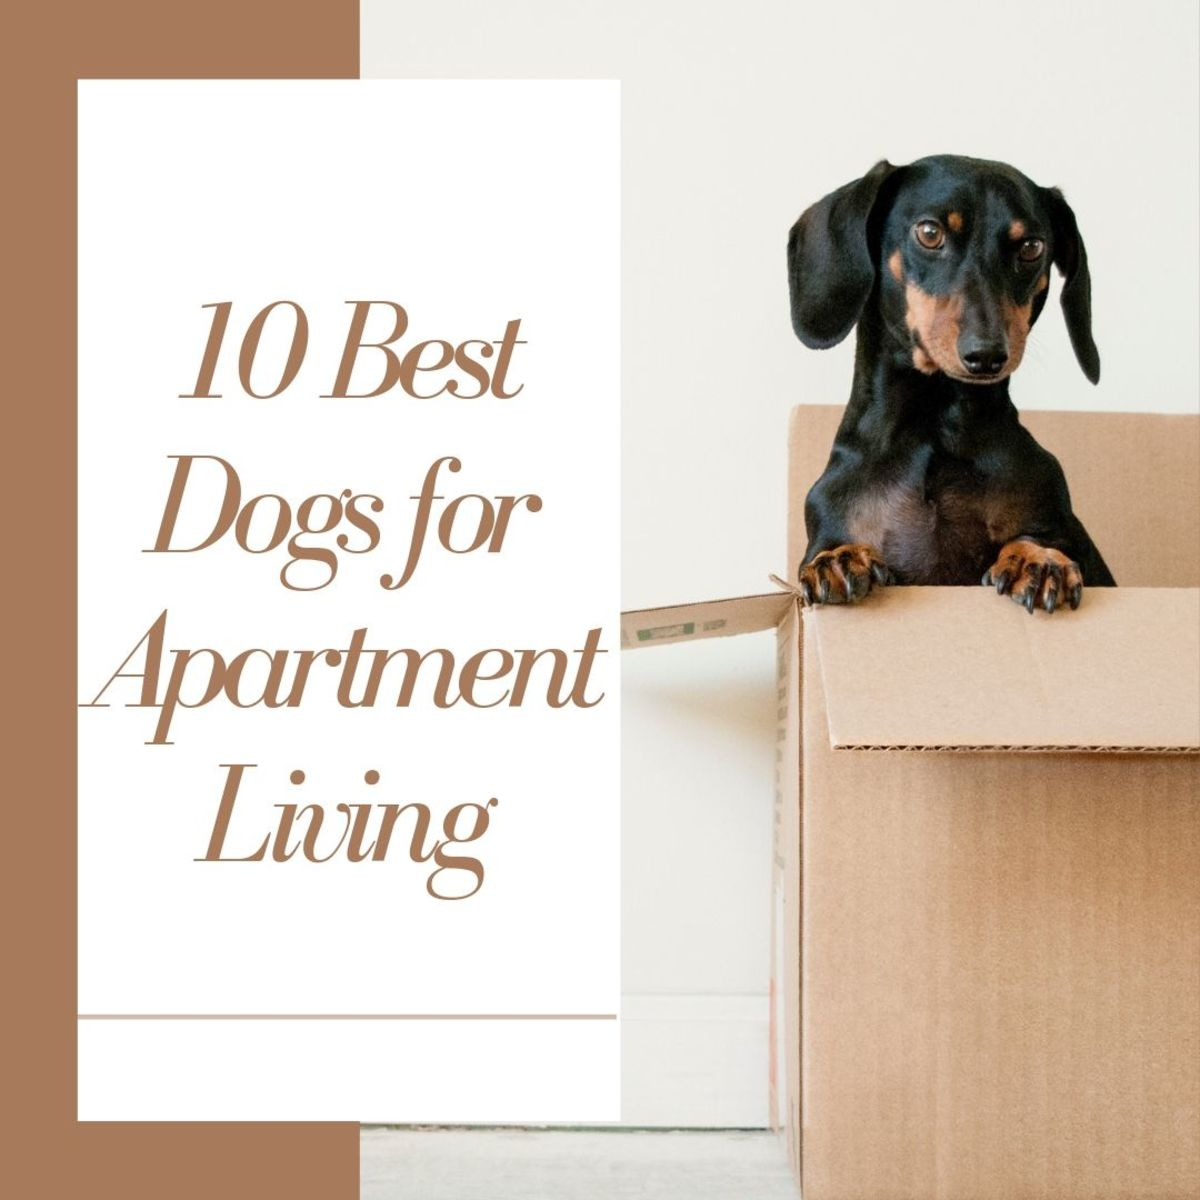 Dogs For Apartments: The Canine Roommate: Top 10 Best Dog Breeds For Apartment